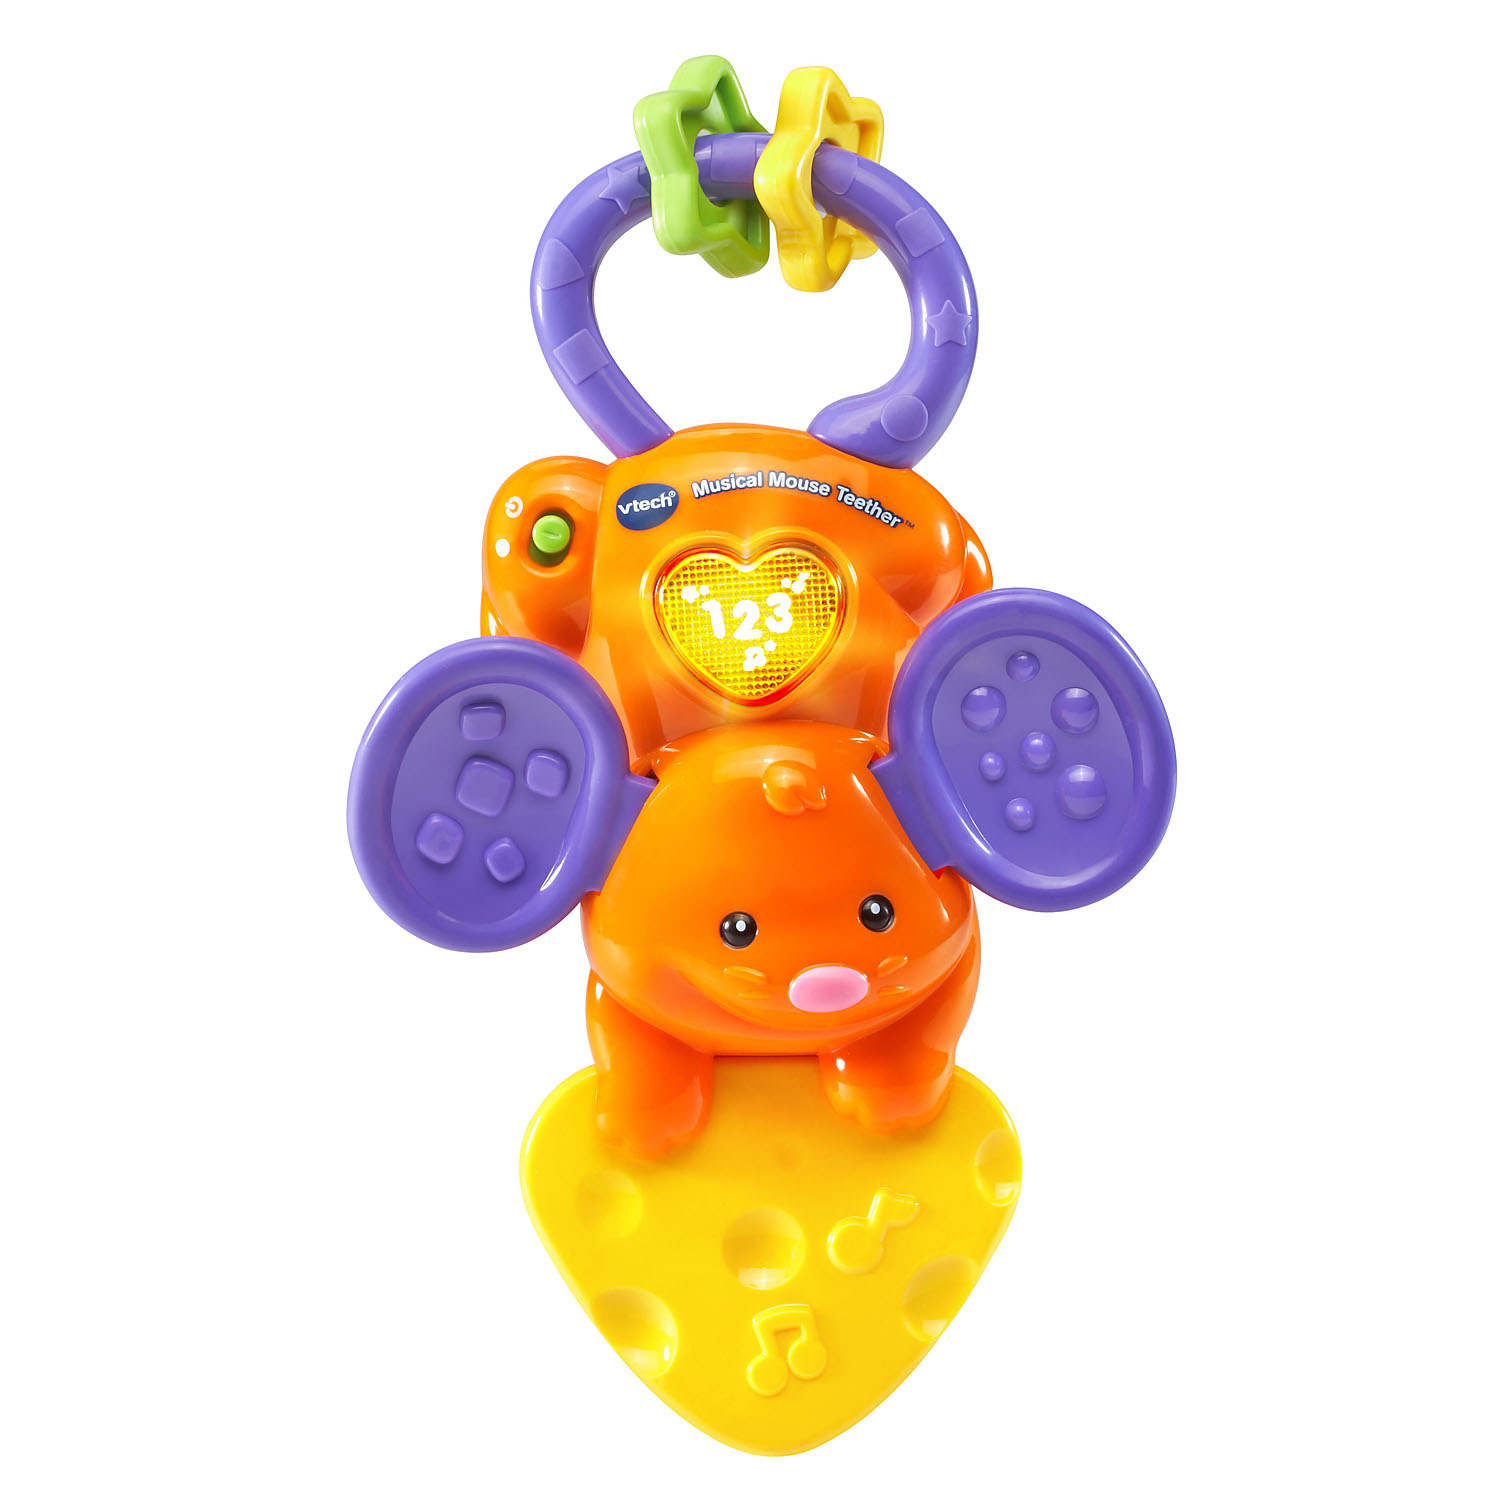 Musical Mouse Teether by VTech